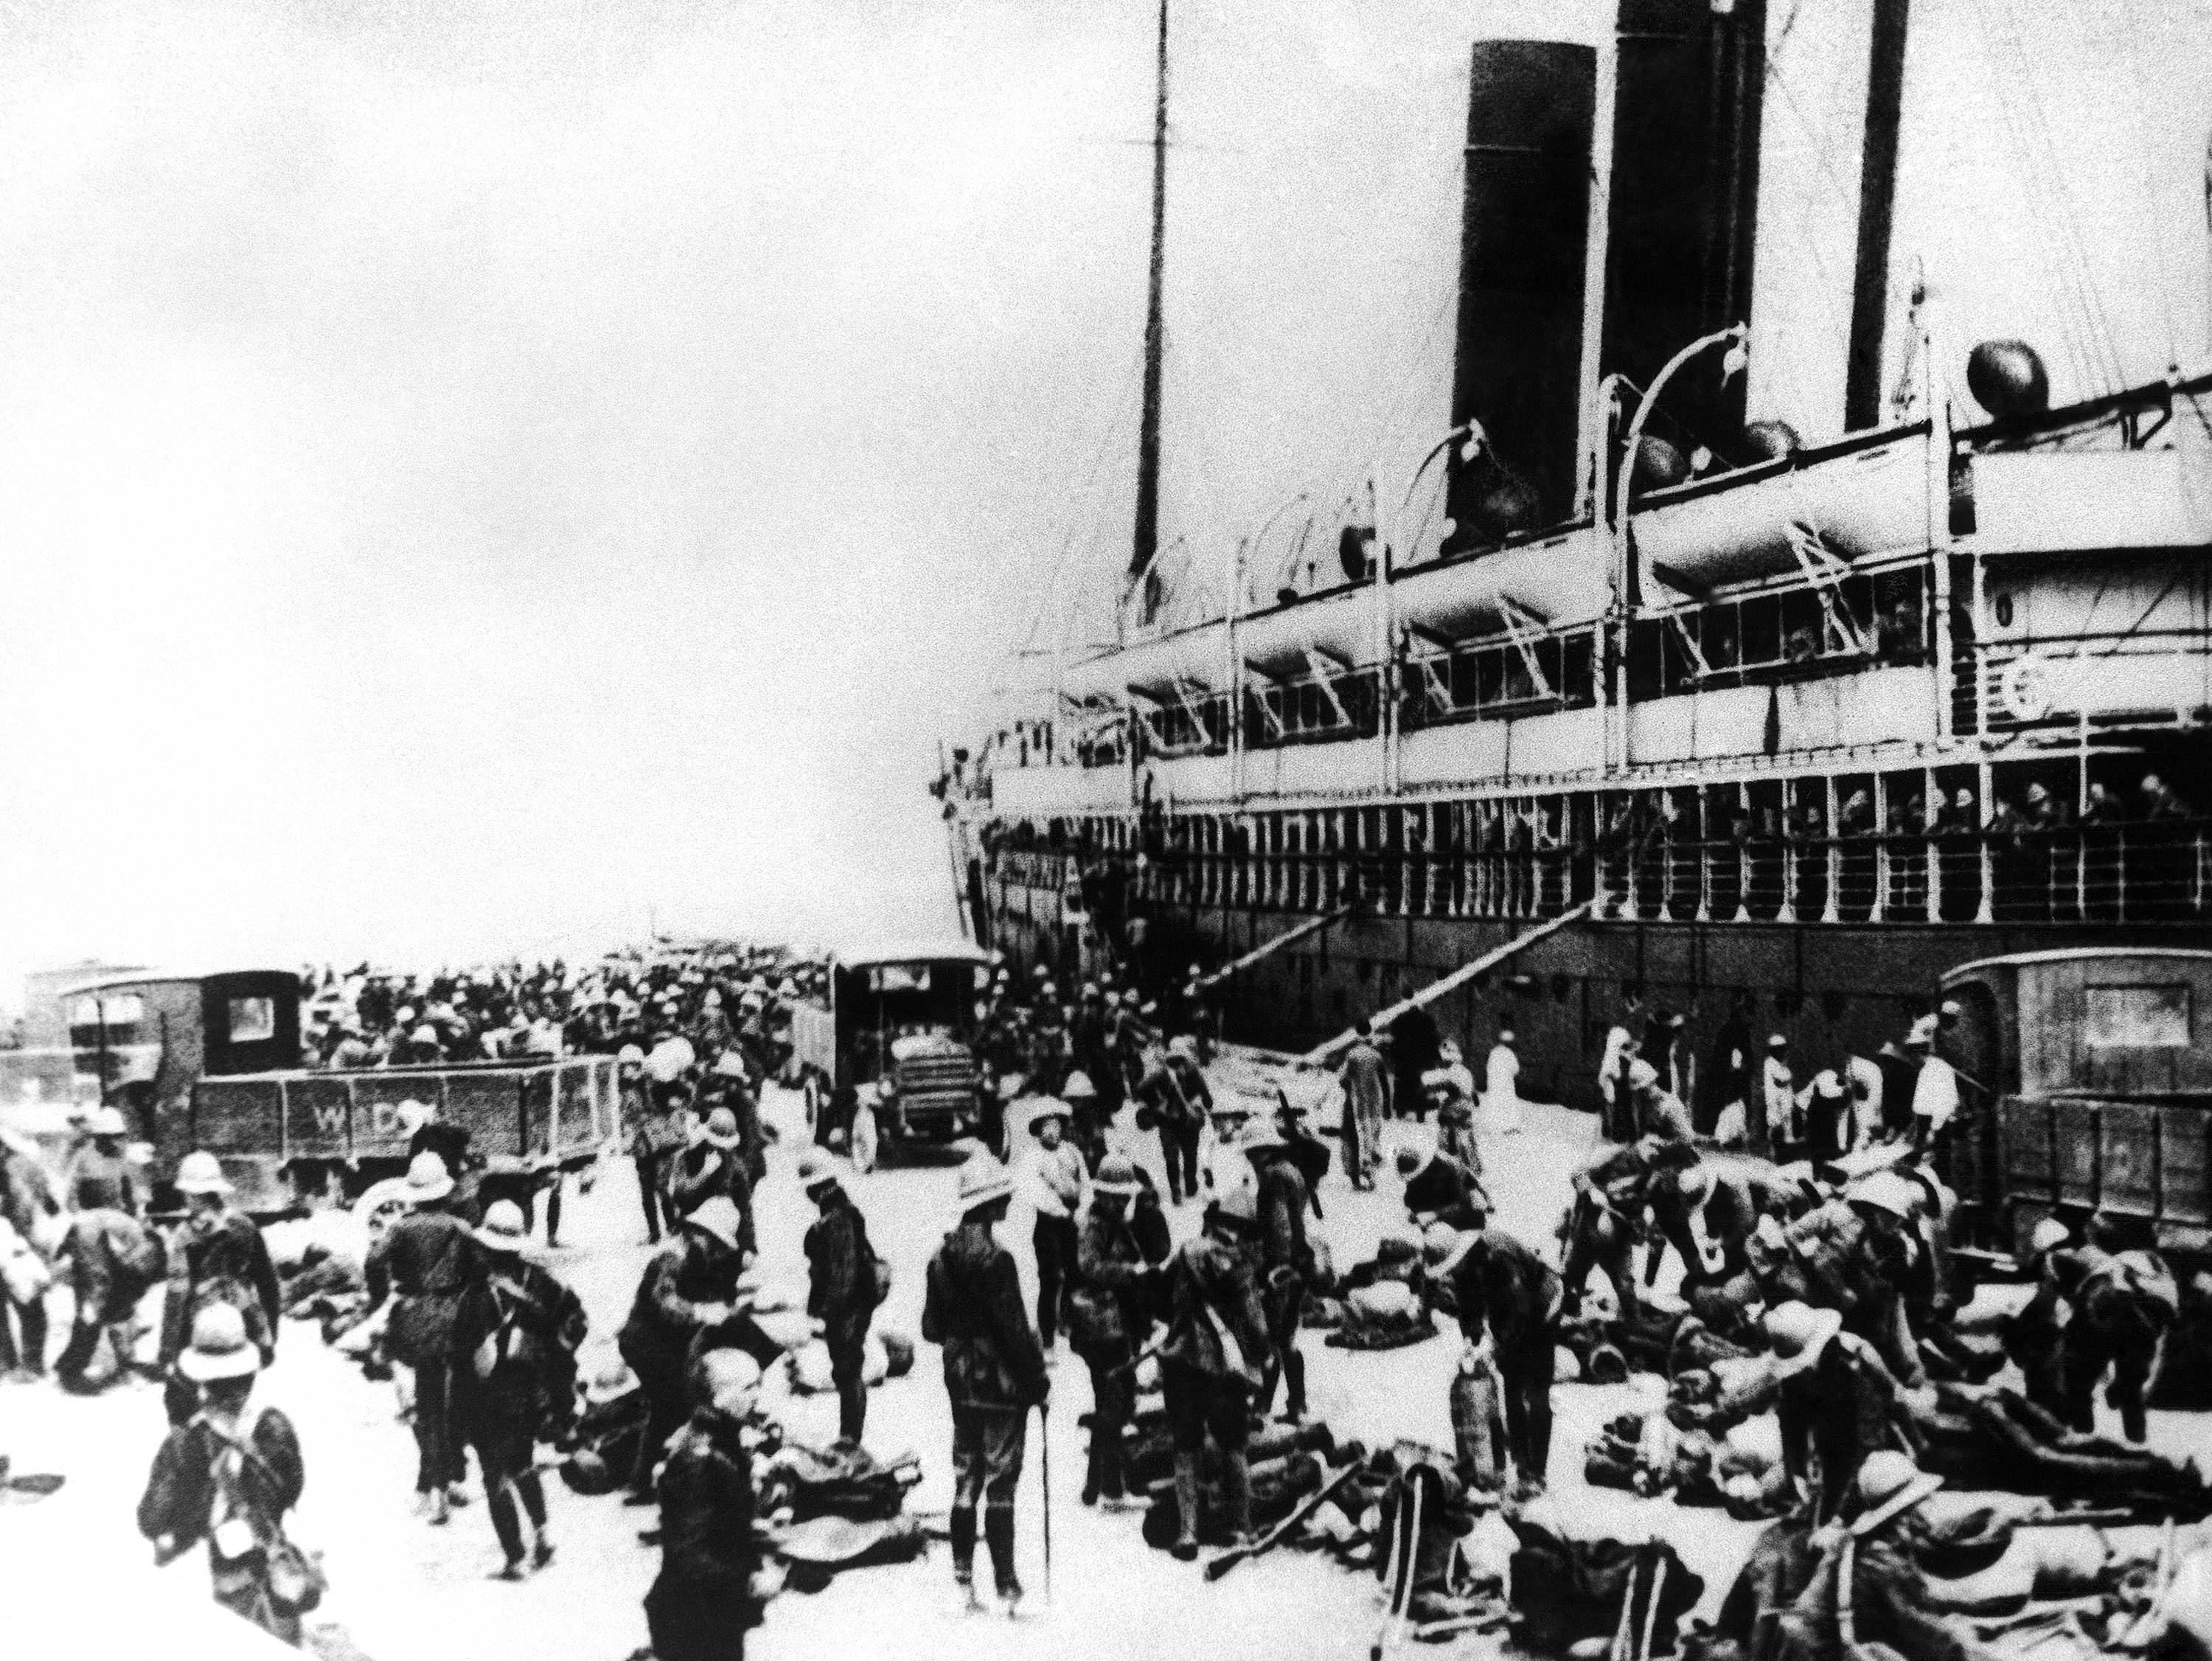 30 OF 100: In this 1915 file photo, Australian troops arrive in Alexandria, Egypt, en route to the battlefield on the Gallipoli Peninsula during World War I.